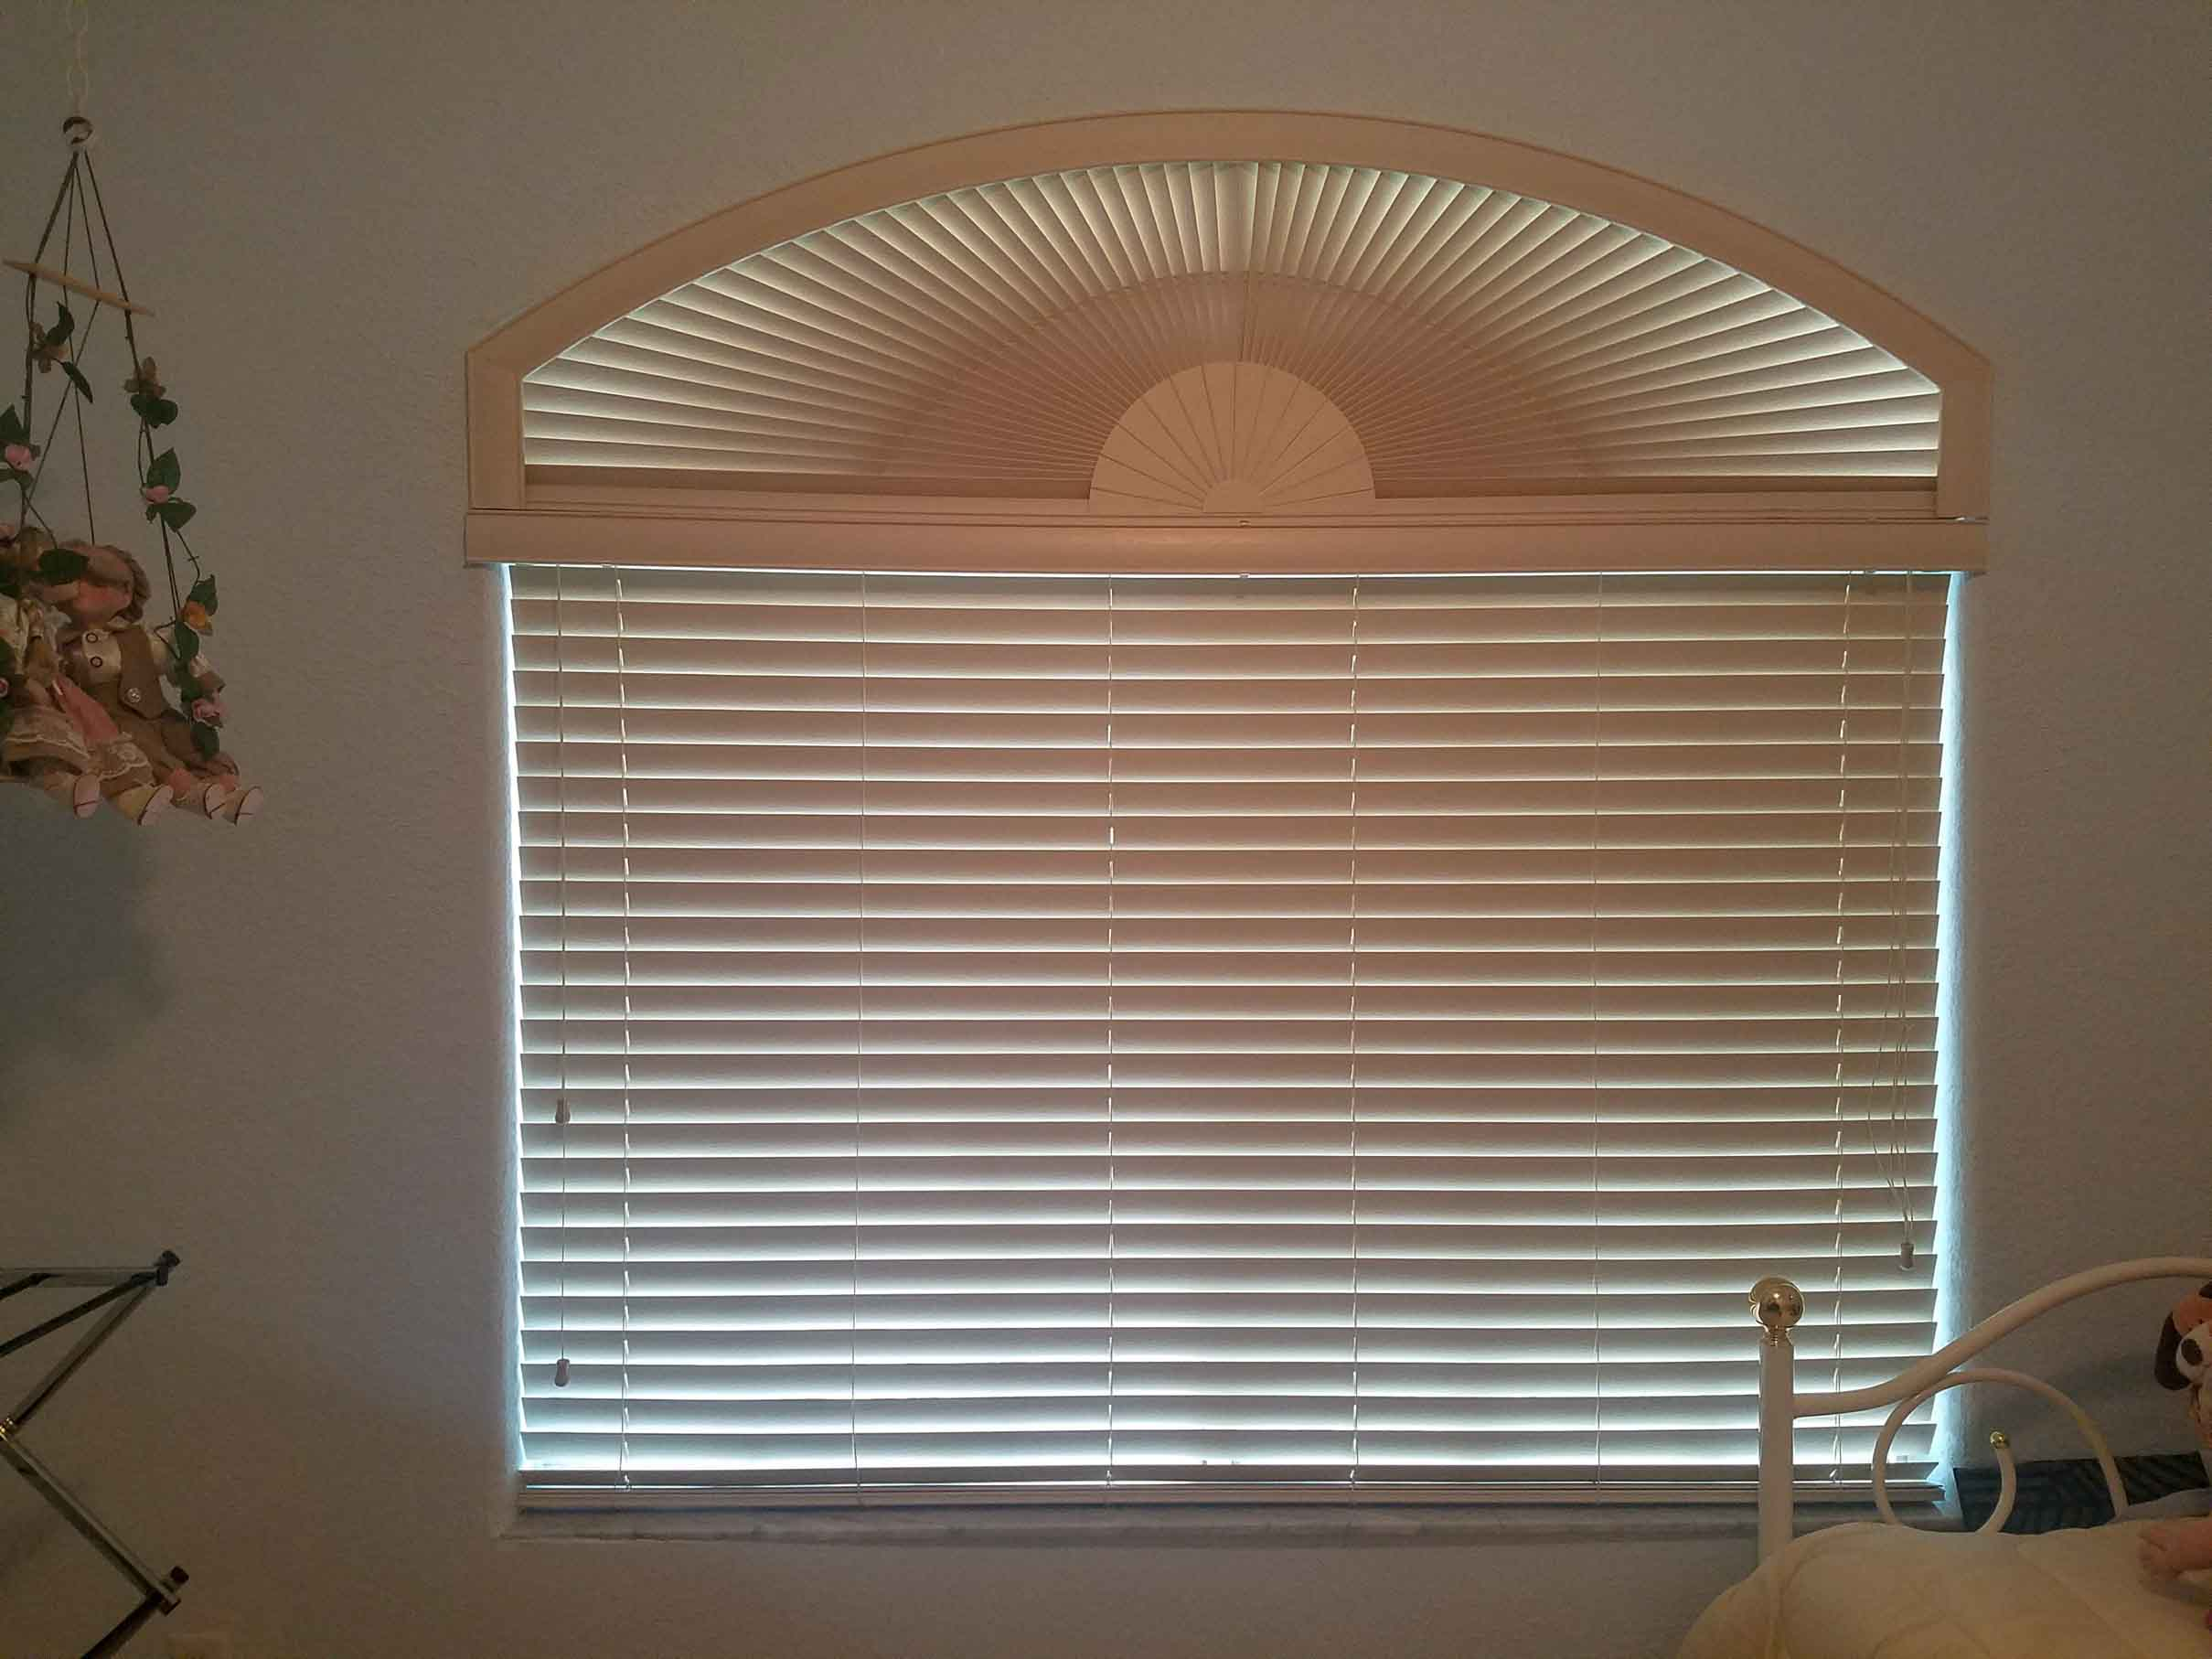 wood blinds gallery WOOD BLINDS GALLERY 20180201 162557